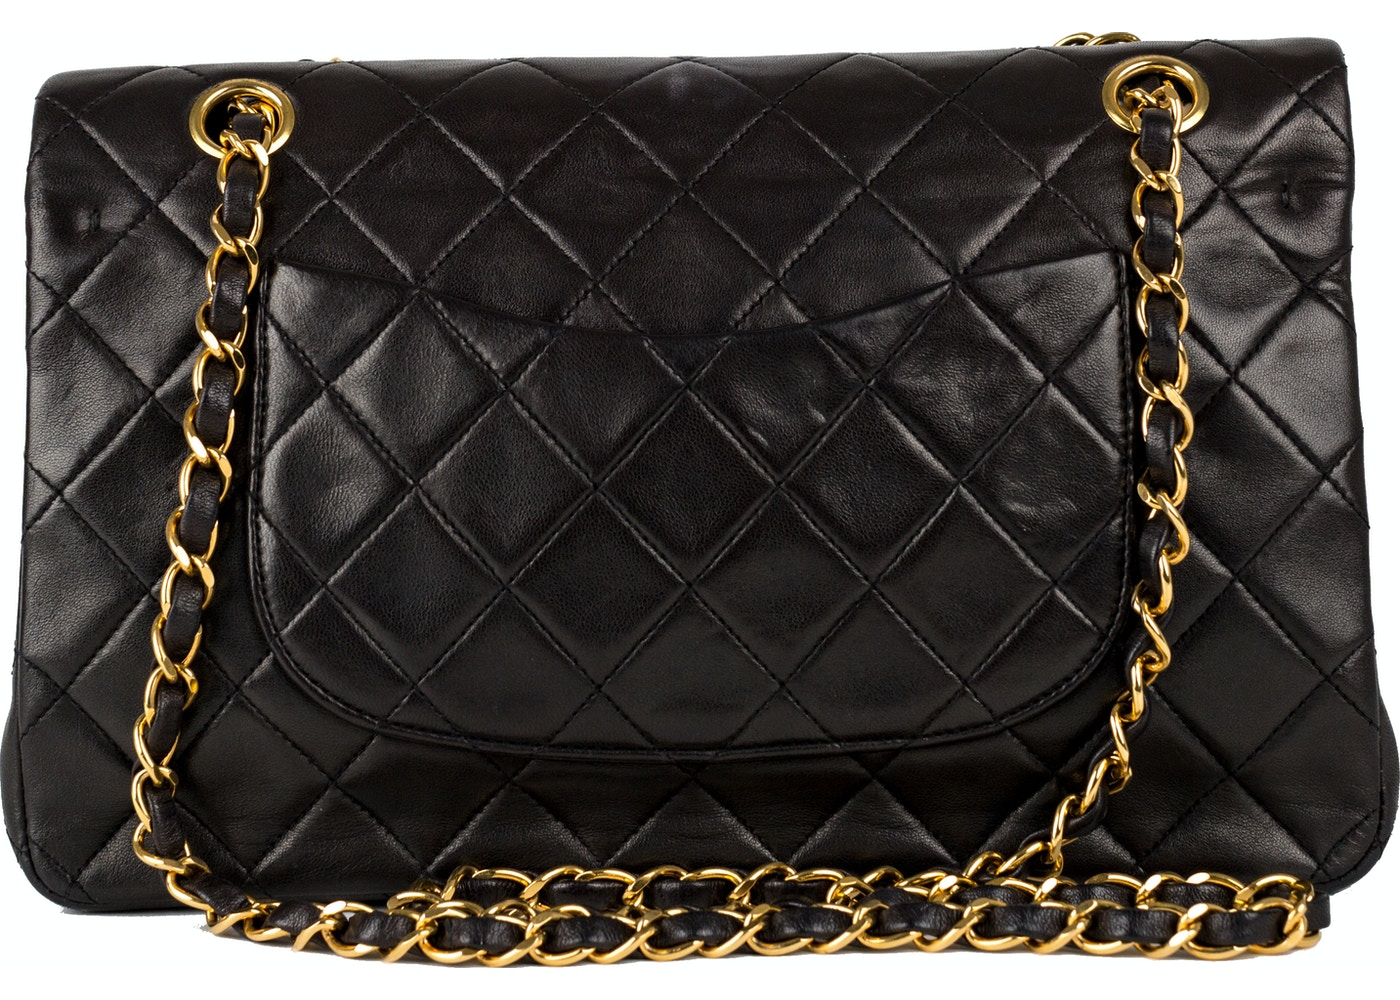 9fb01d9b72ce Sell. or Ask. View All Bids. Chanel Vintage Classic Double Flap Quilted  Medium Black